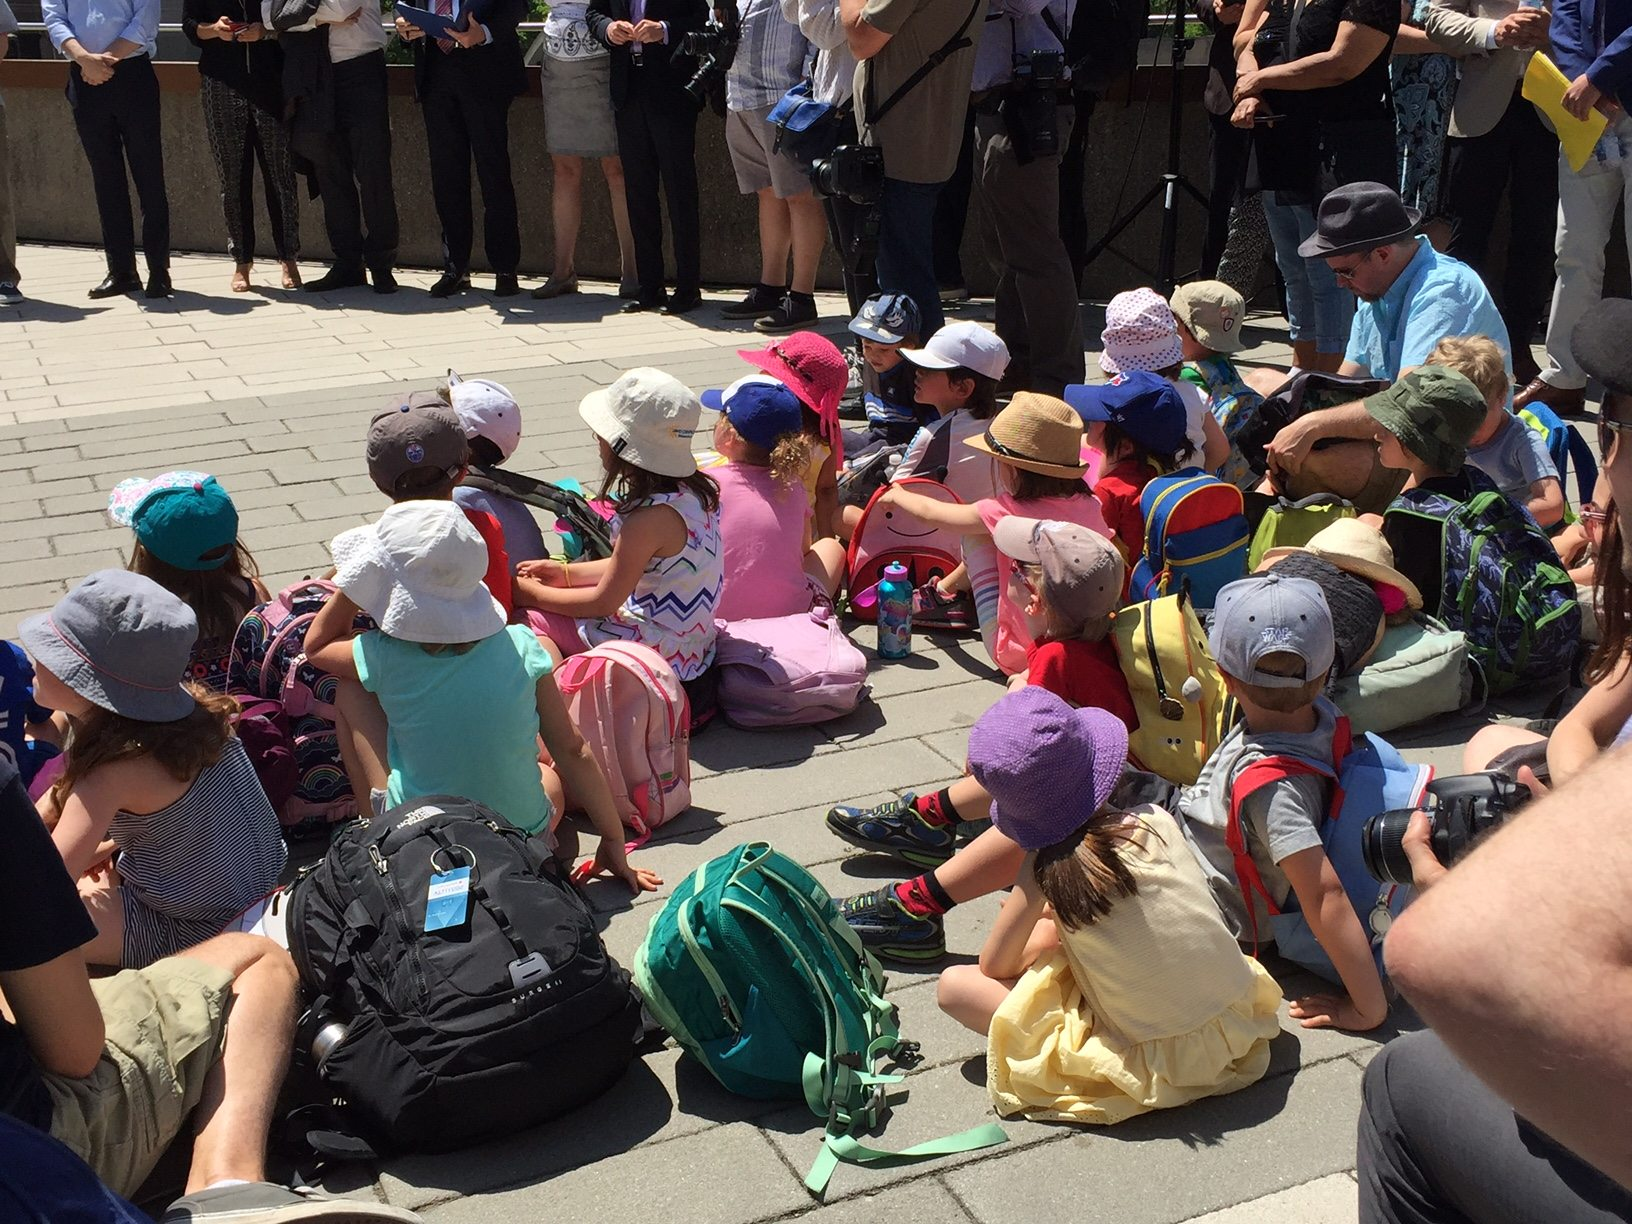 A group of kindergarteners from Clinton Public School watch speeches from the rooftop podium. Their teacher, Mr. V, brings his class every year to the flag raising.